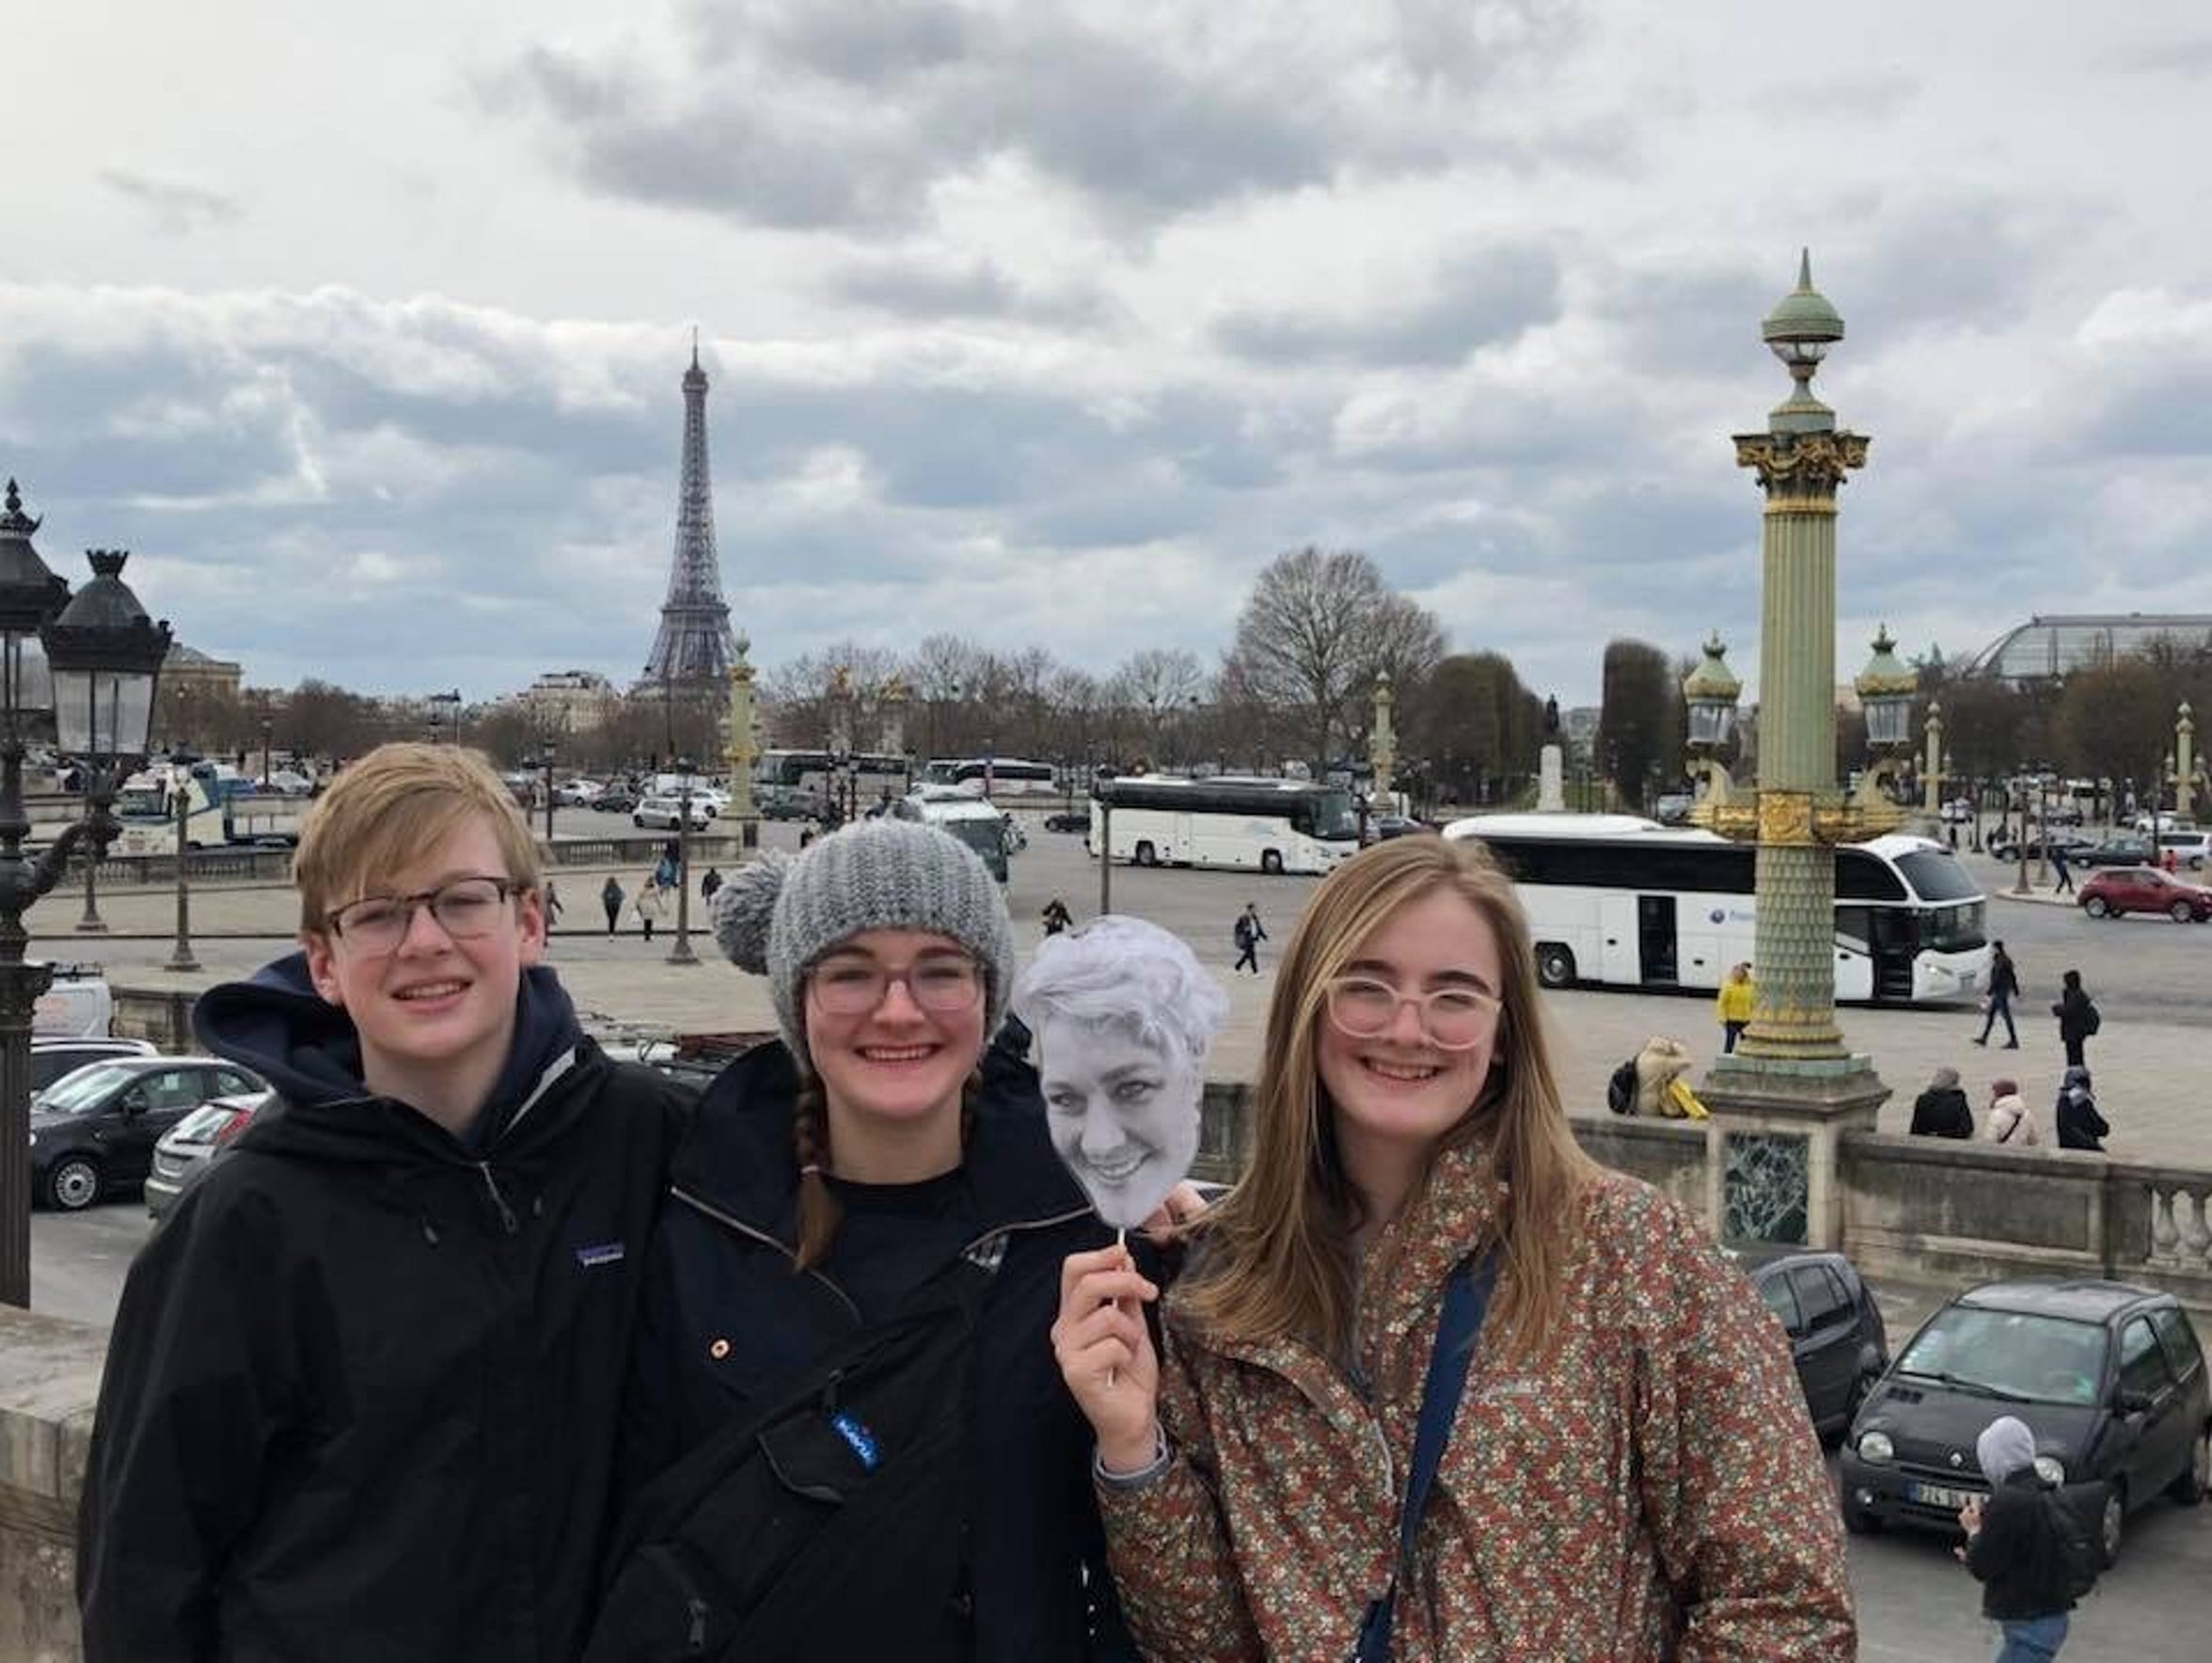 Emily Reese's children hold up a cutout of her face in France.